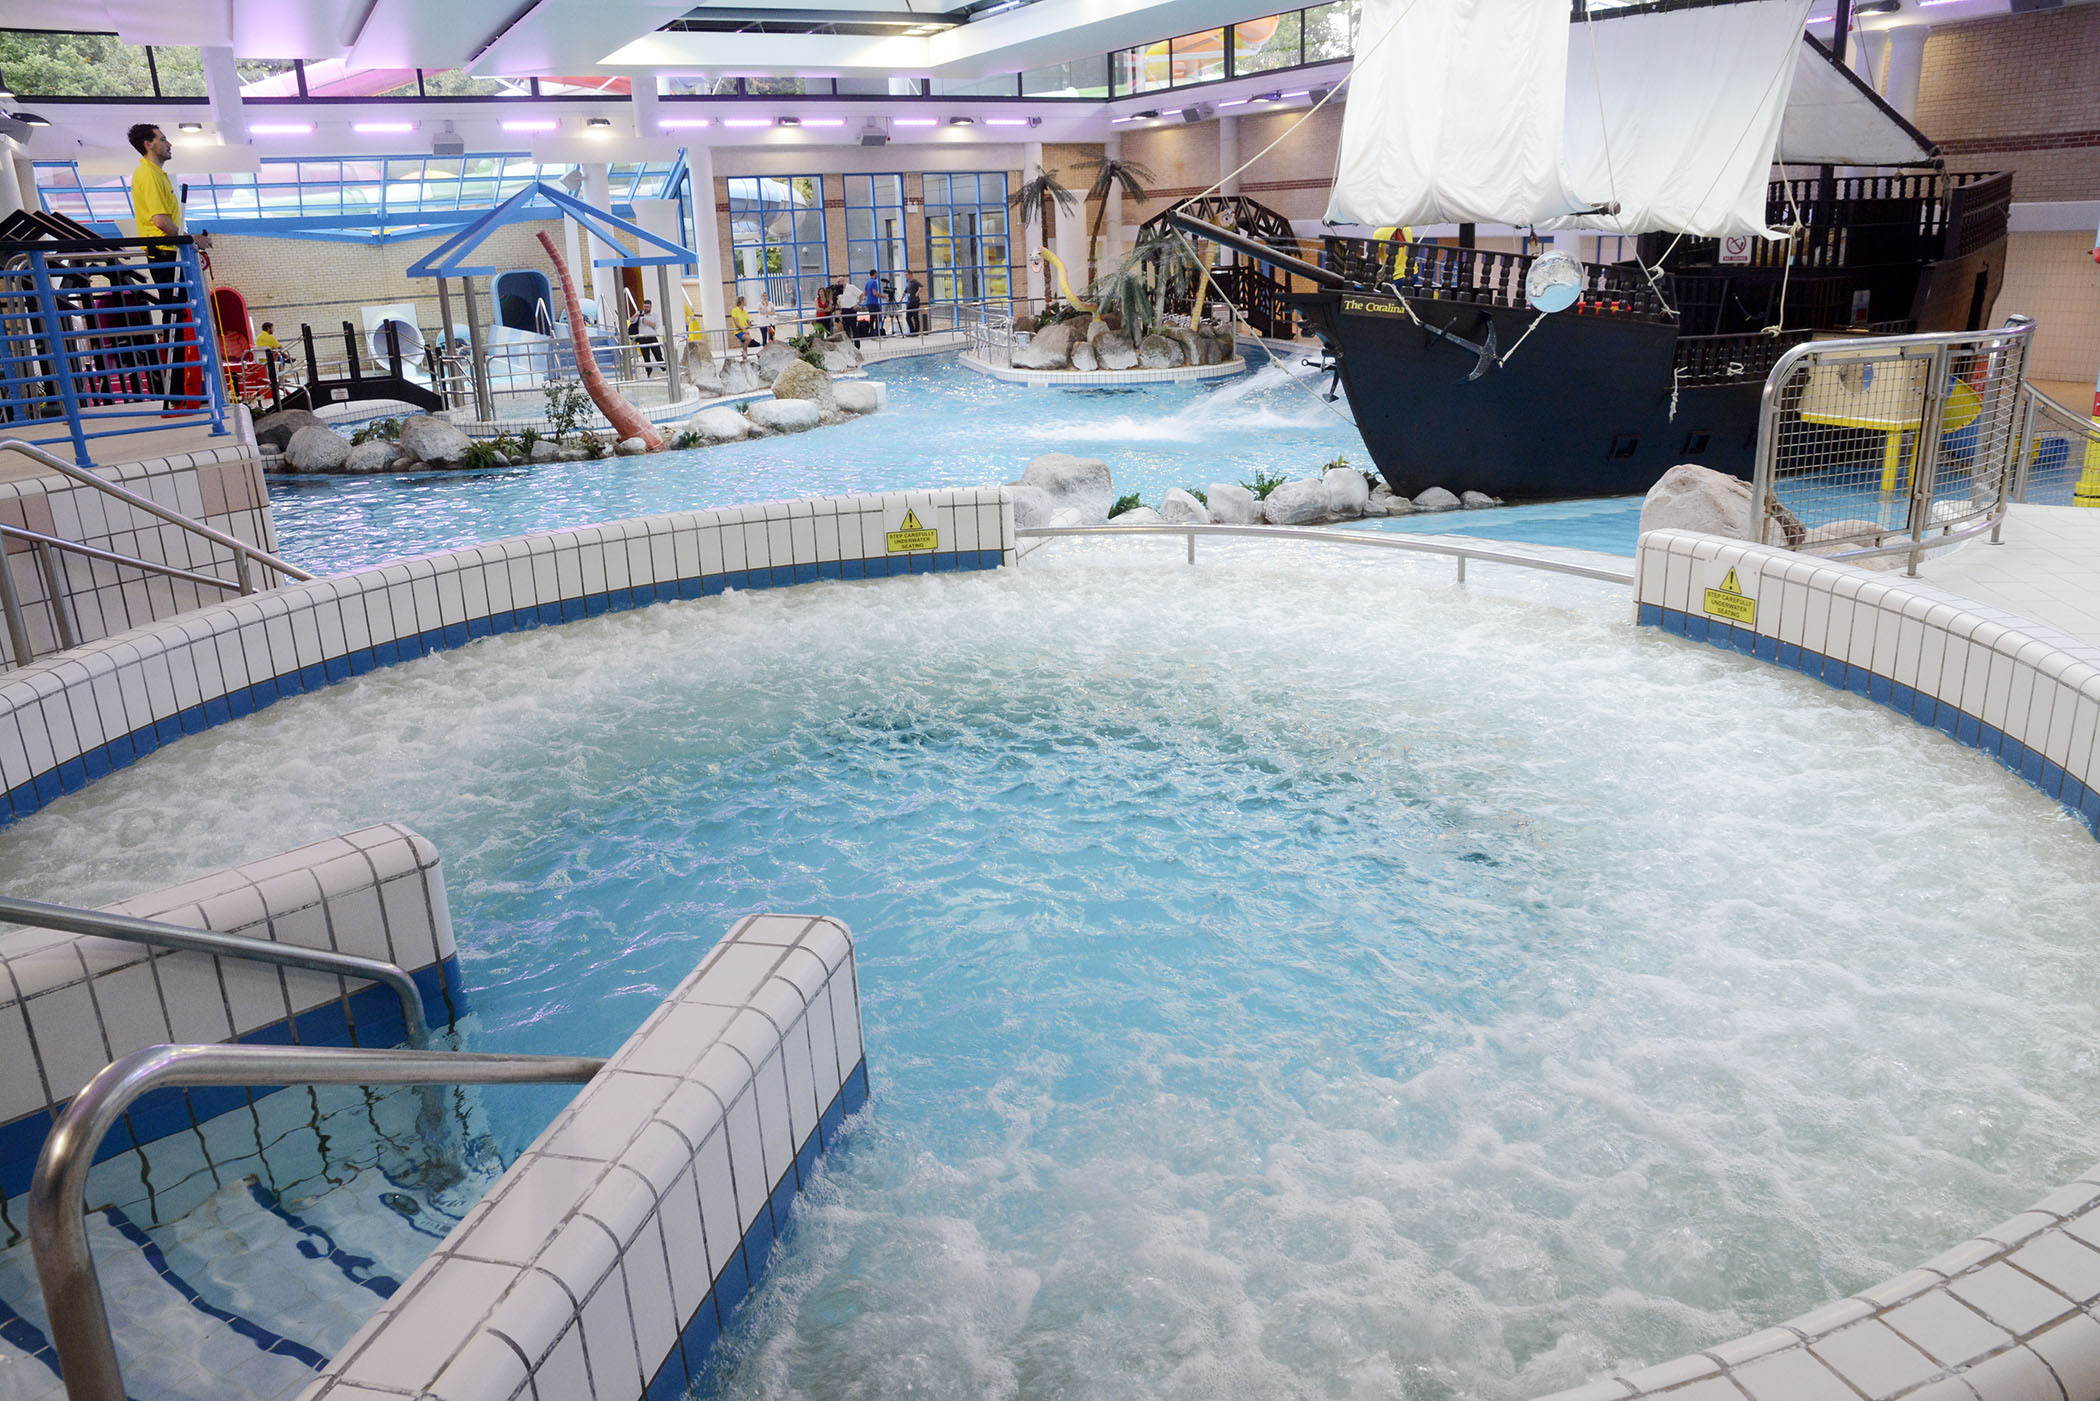 FLOODING HELL: Flumes shut down at Coral Reef after flood